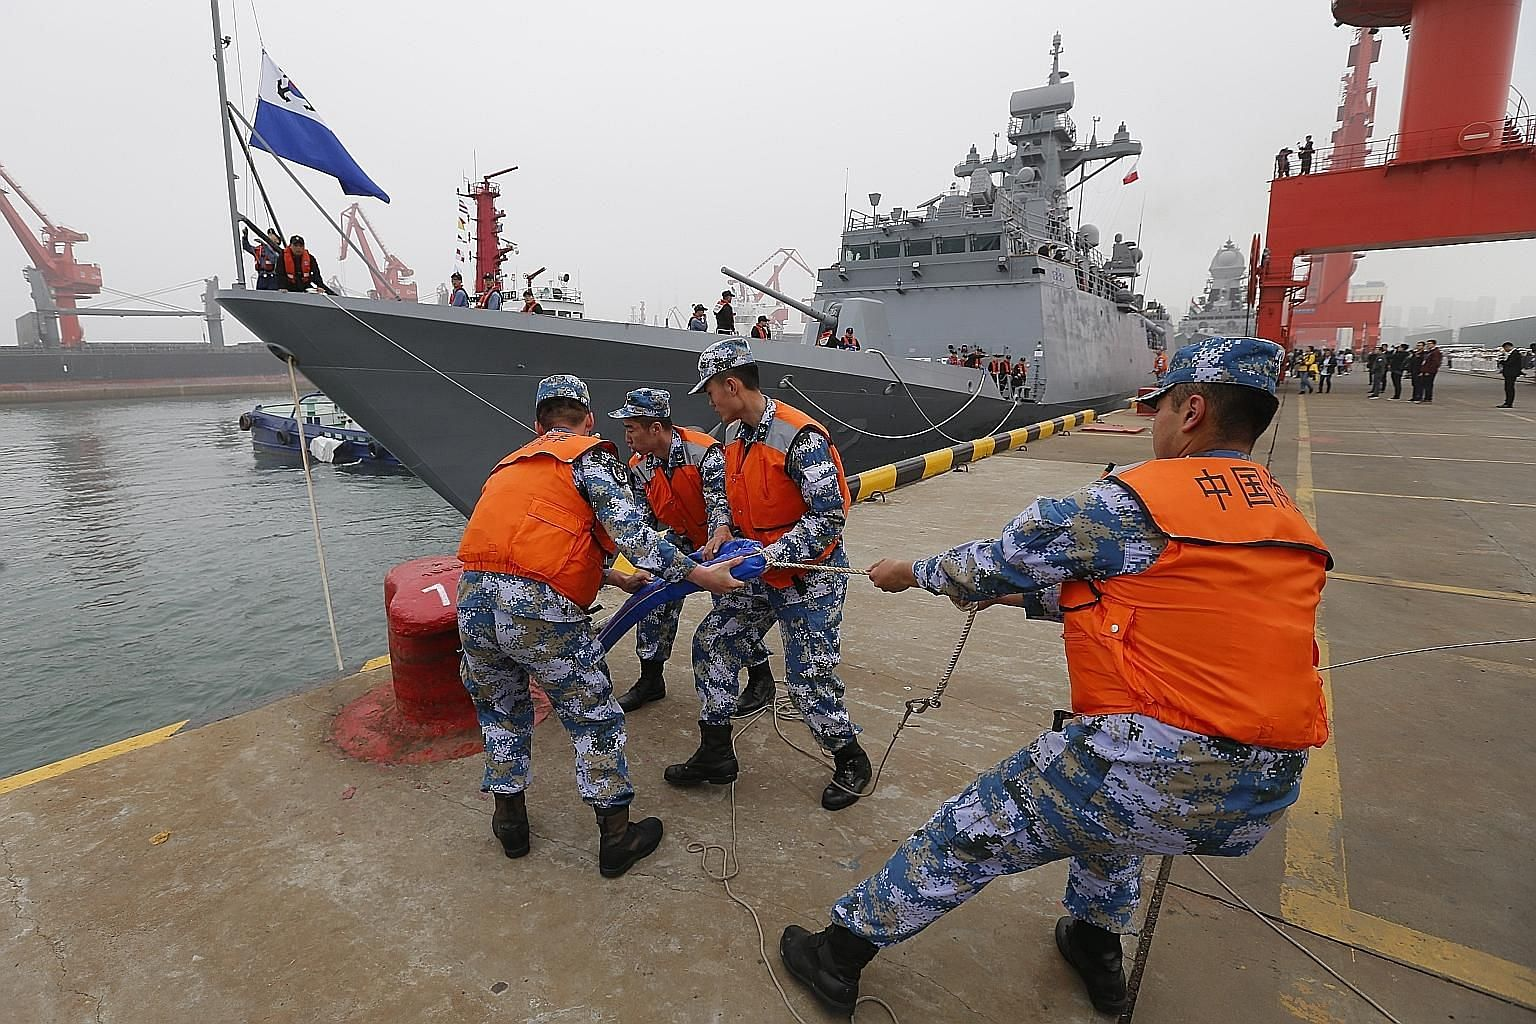 Chinese navy soldiers mooring the Korean Incheon-class frigate ROKS Gyeonggi FFG-812 at a port in Qingdao, China, yesterday. PHOTO: EPA-EFE